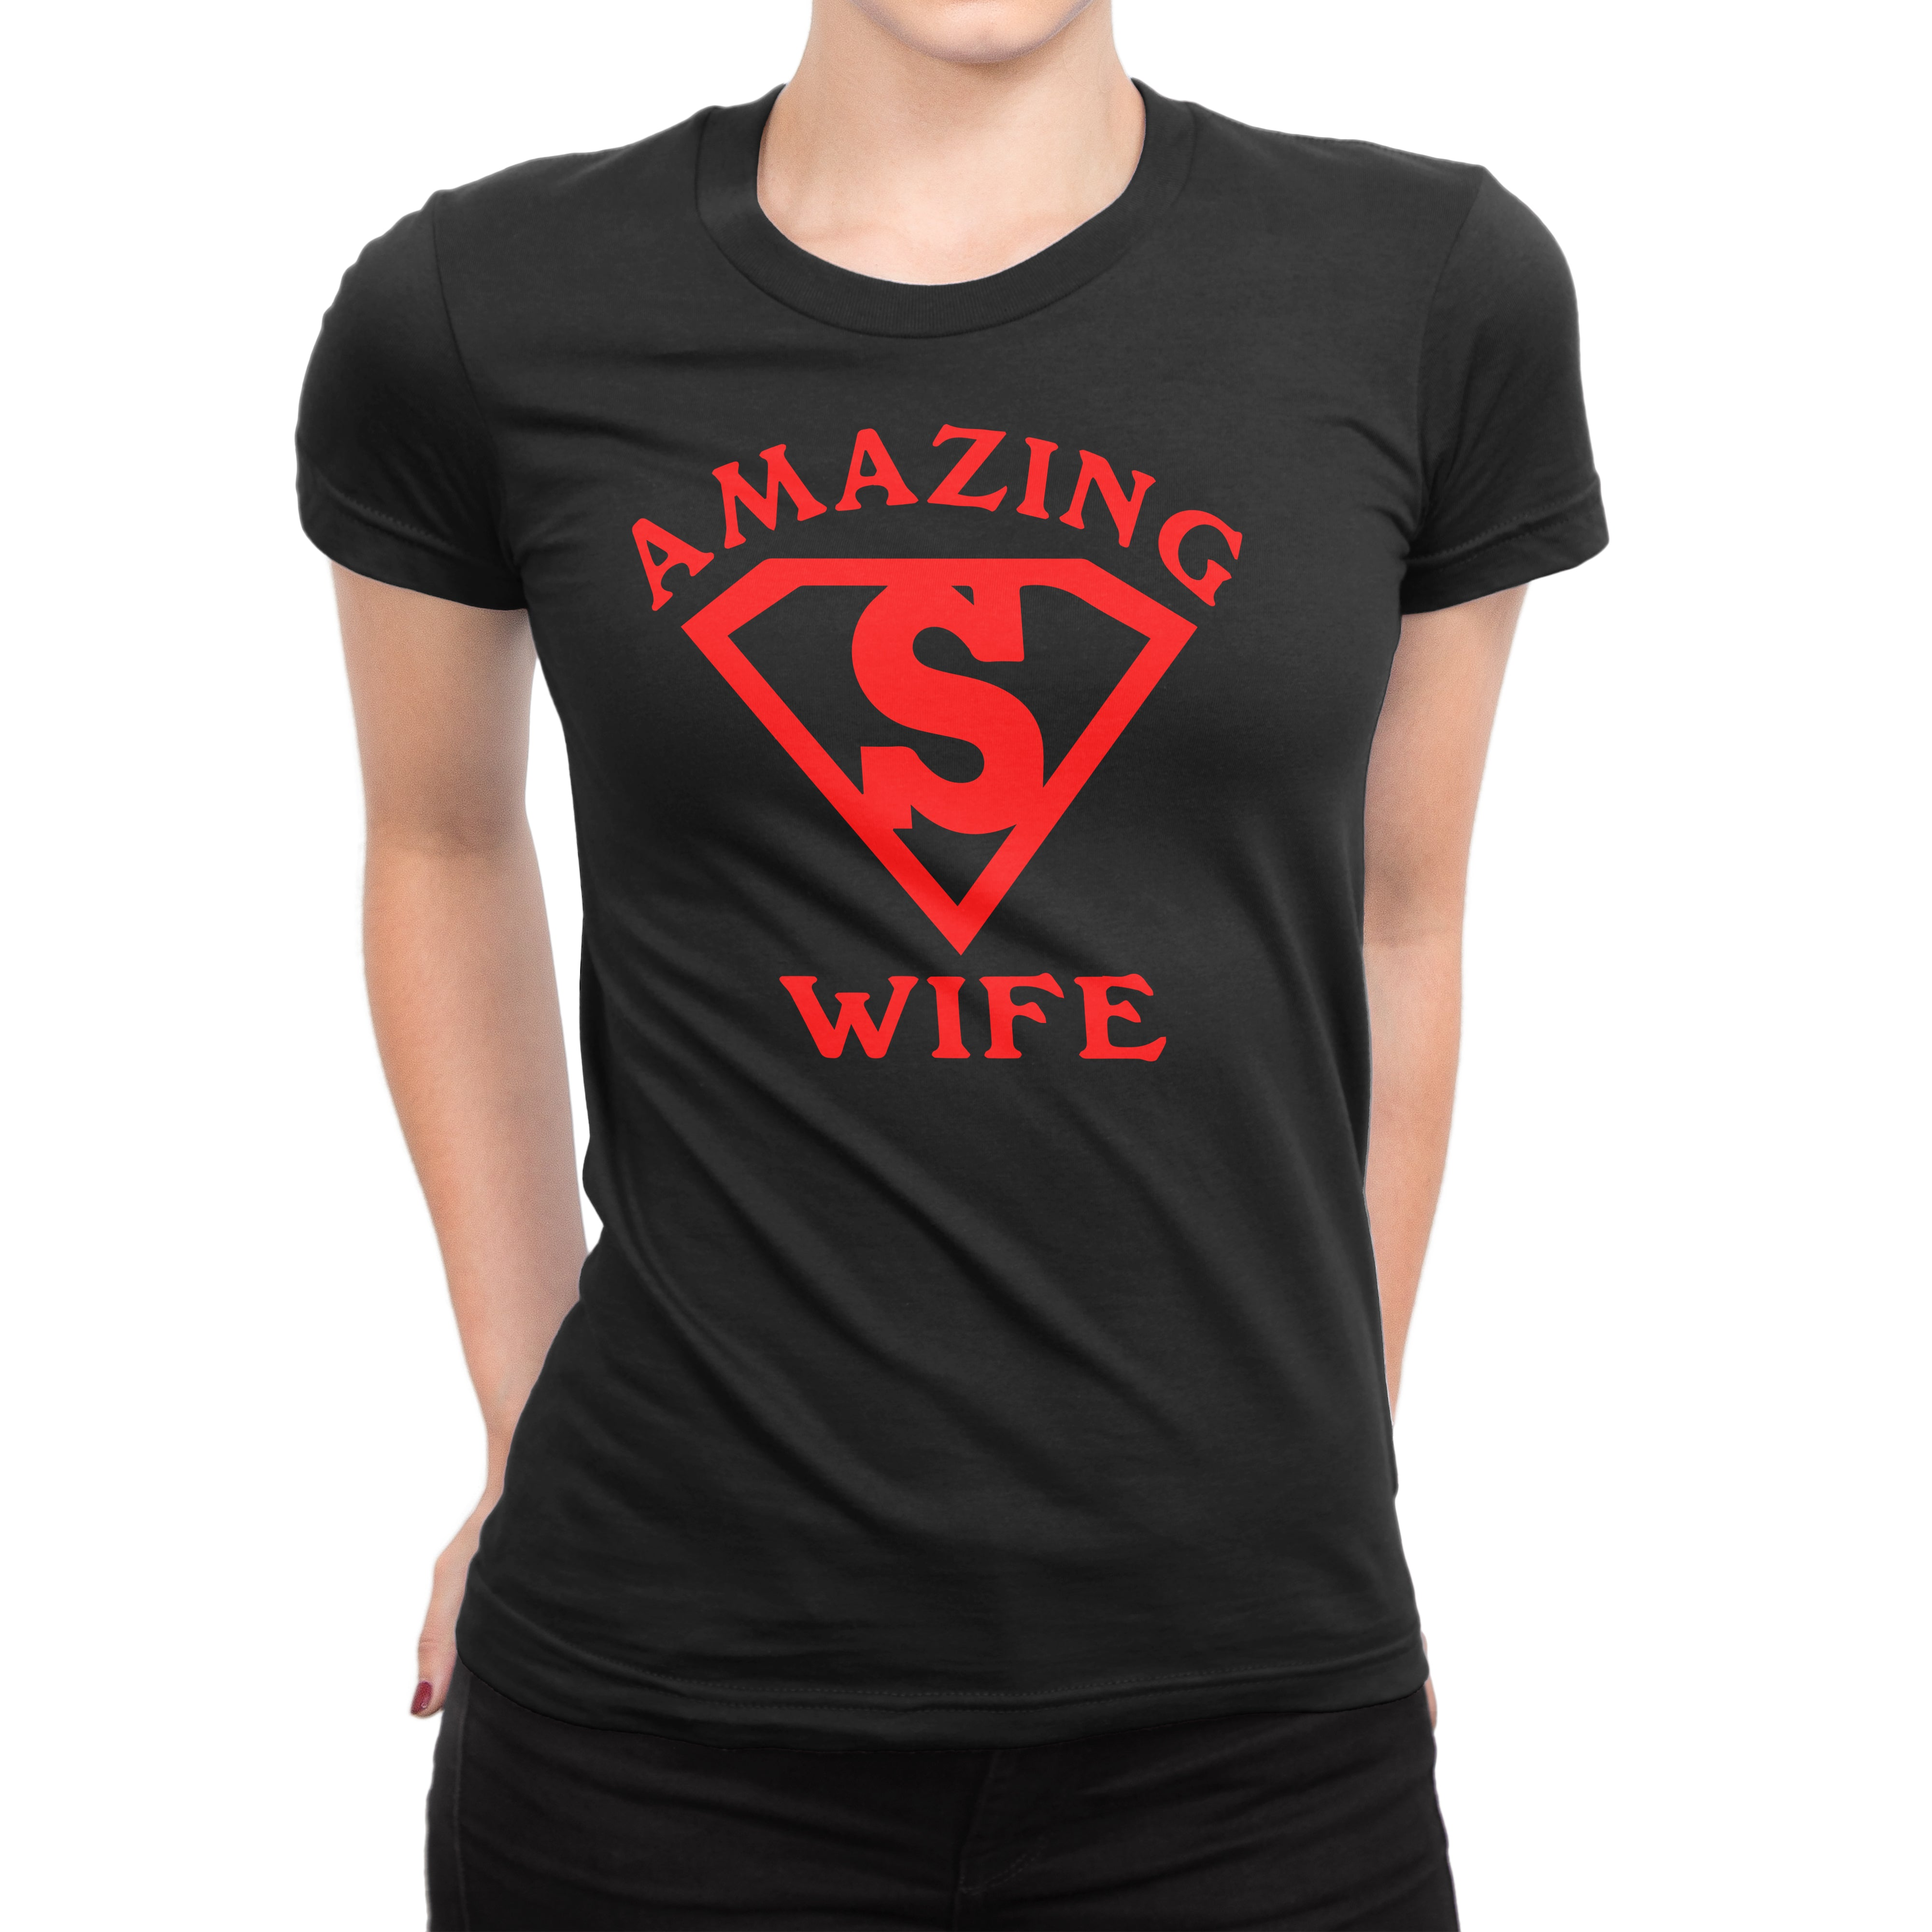 Women's Funny T-Shirts